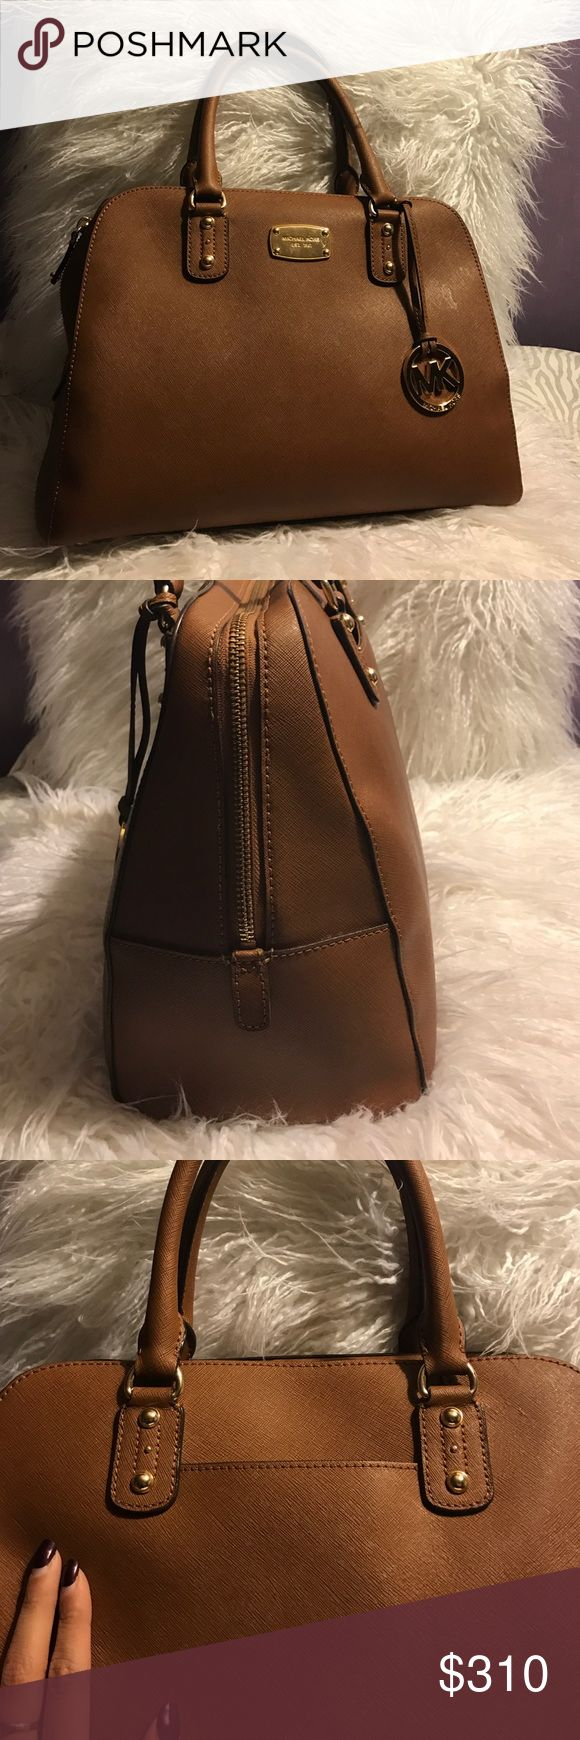 Authentic MK bag👜 Matches with pretty much everything super cute and at a great deal. Like brand new!! Michael Kors Bags